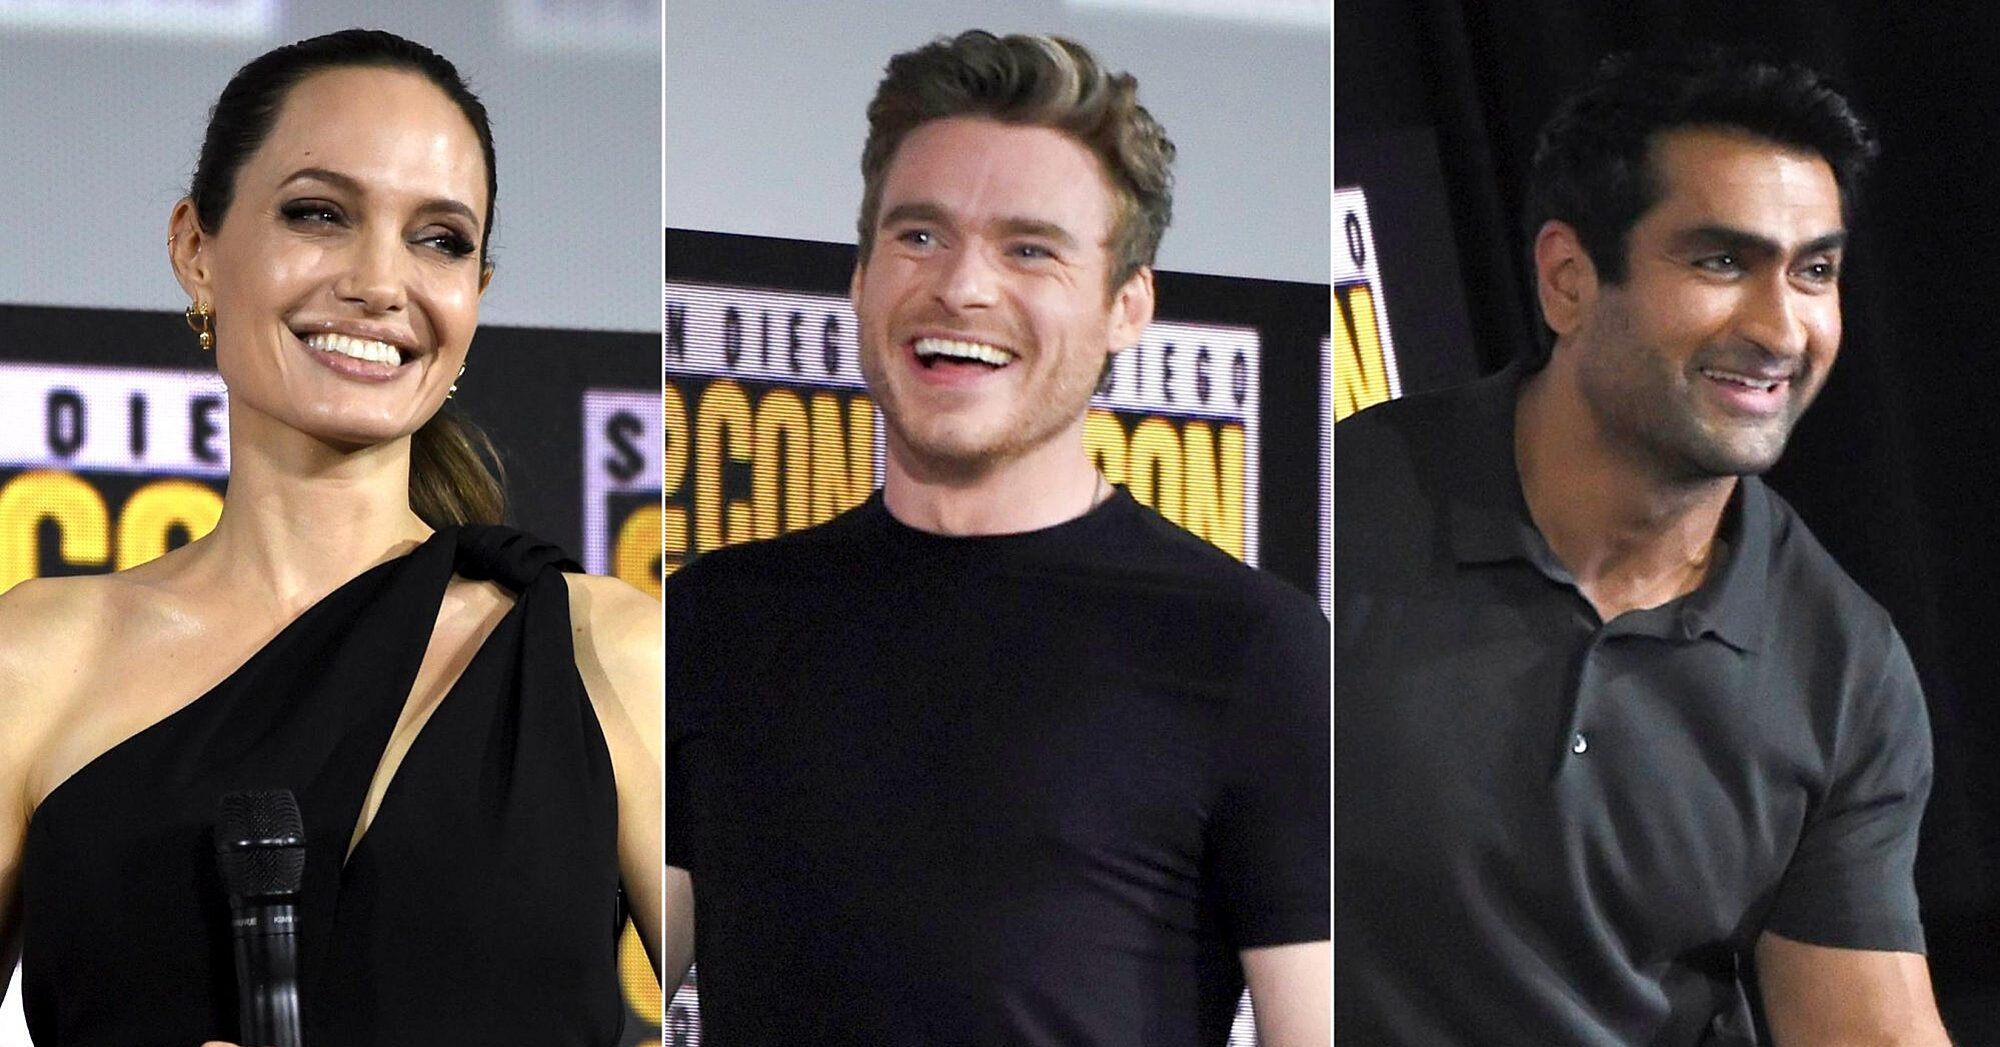 Marvel introduces The Eternals with Angelina Jolie, Richard Madden | EW.com